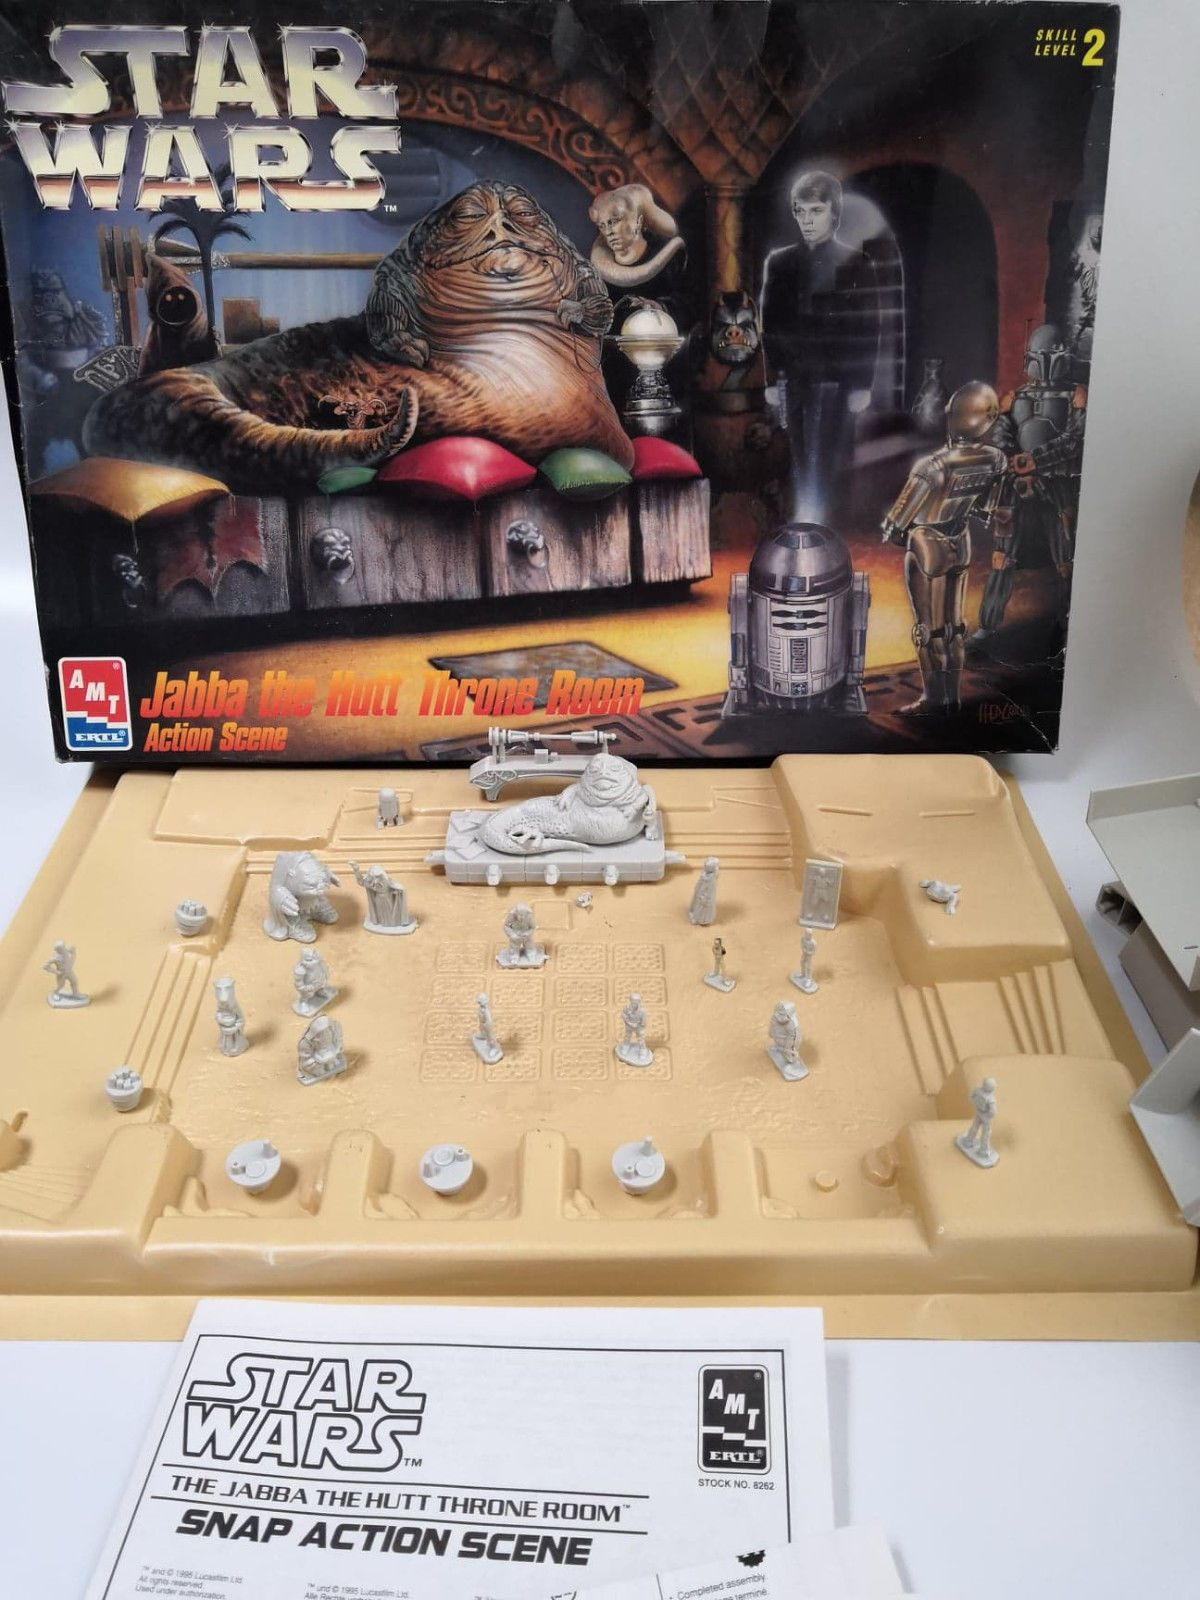 STAR WARS JABBA THE HUTT THRONE ROOM Action Scene AMT ERTL MODEL KIT